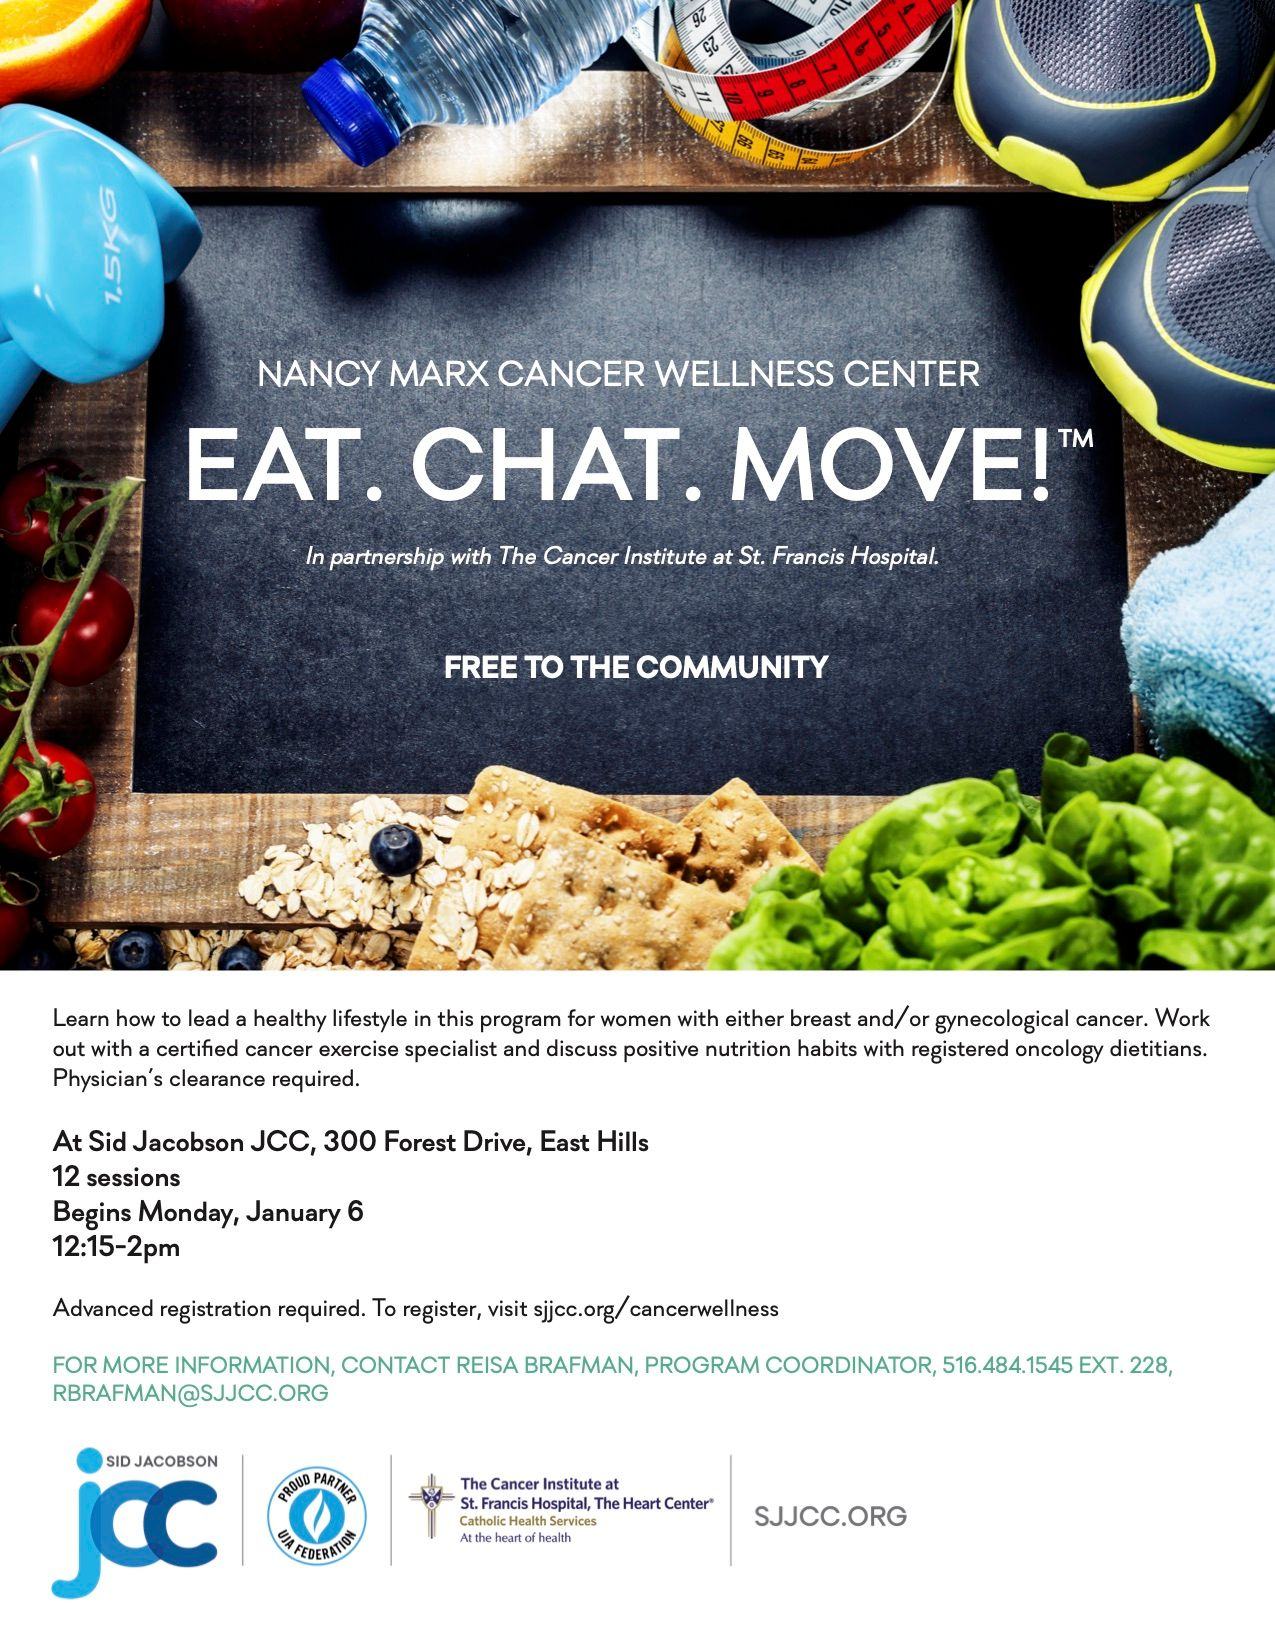 EAT.CHAT.MOVE